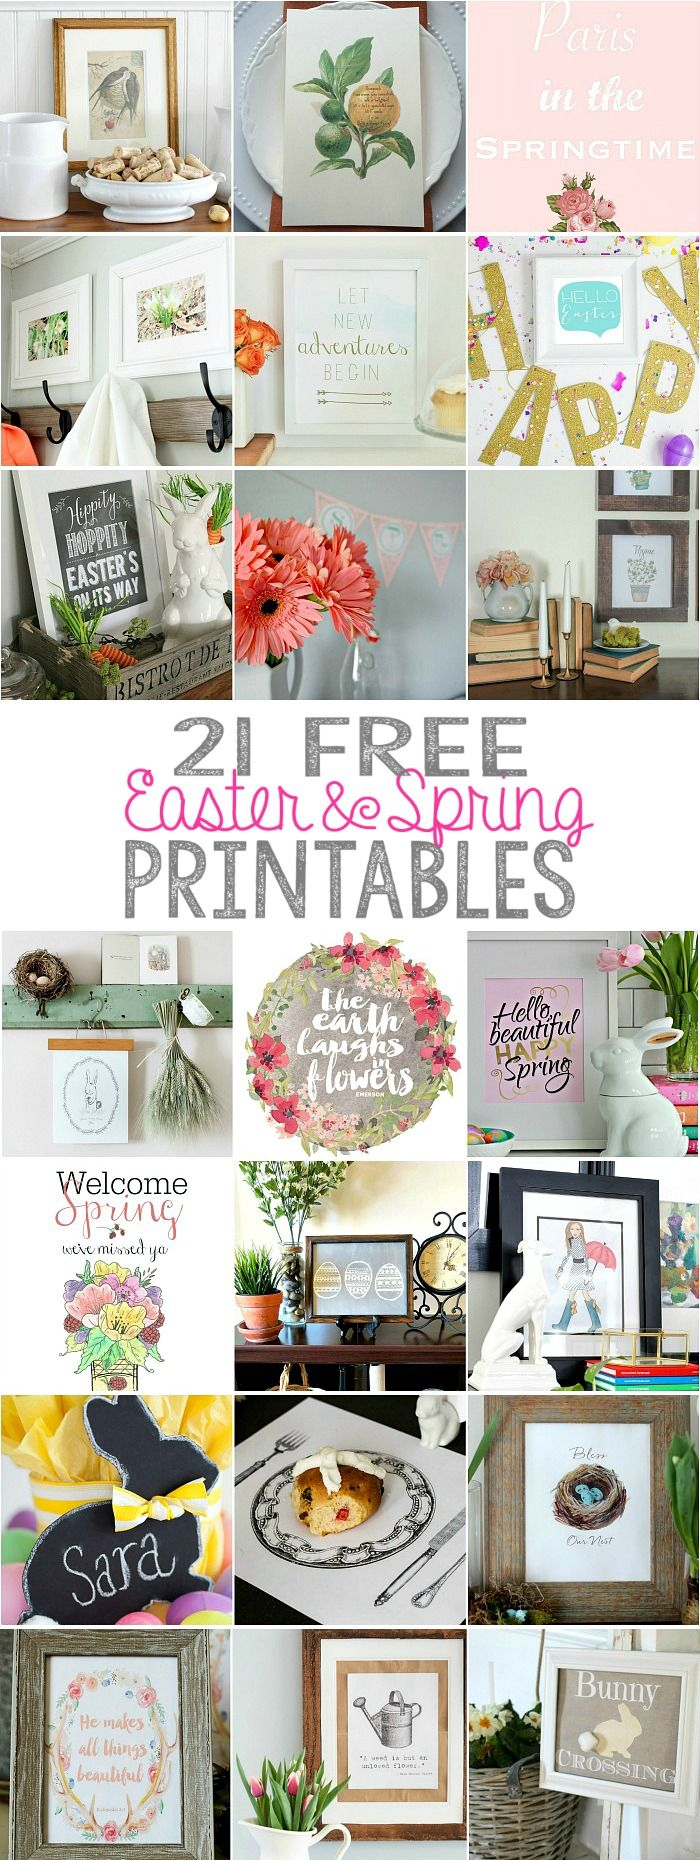 21 free Easter and Spring Printables featured on Ella Claire